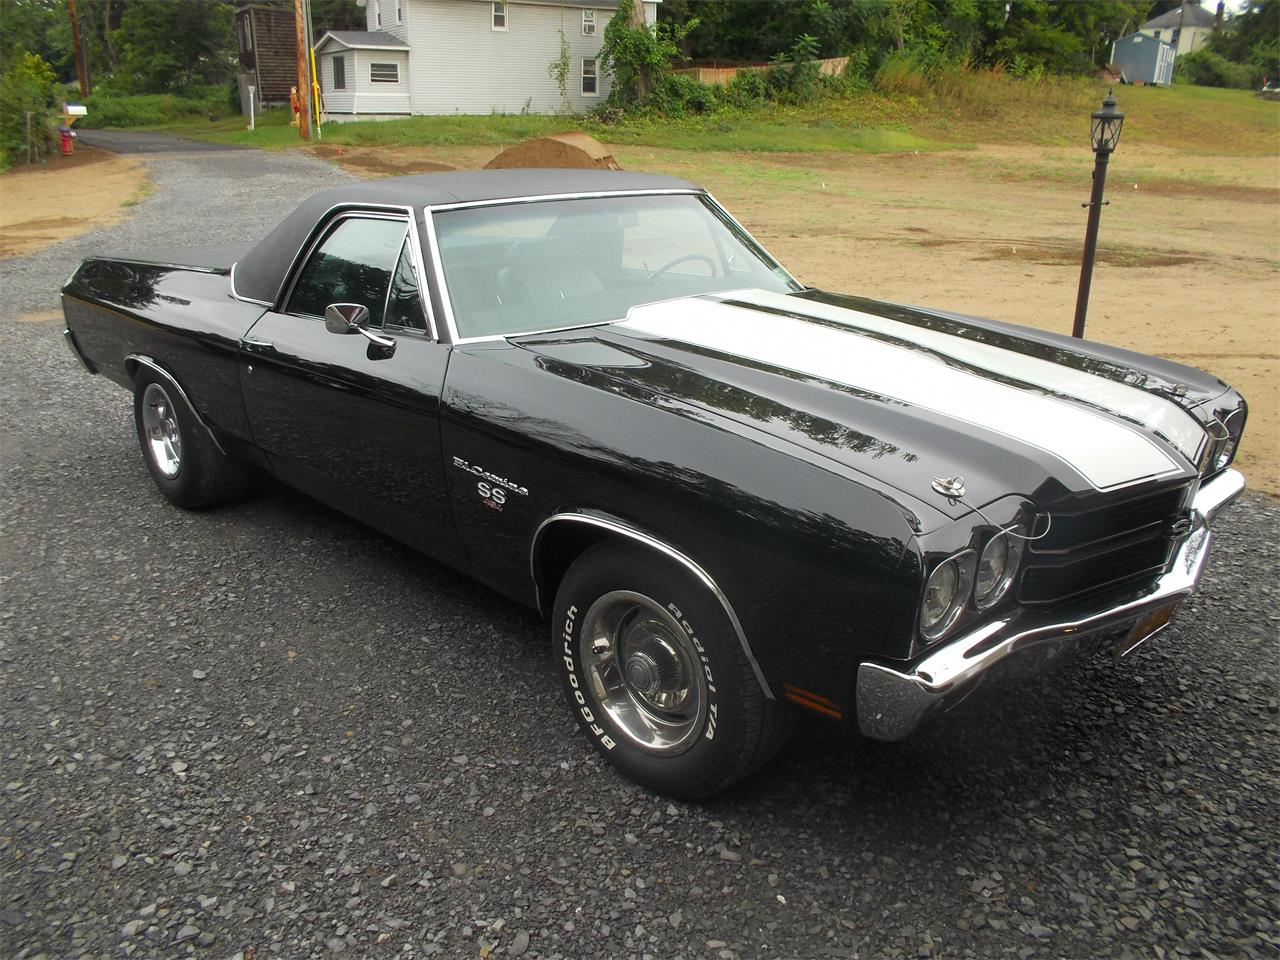 1970 Chevrolet El Camino SS (CC-1266266) for sale in Schenectady, New York